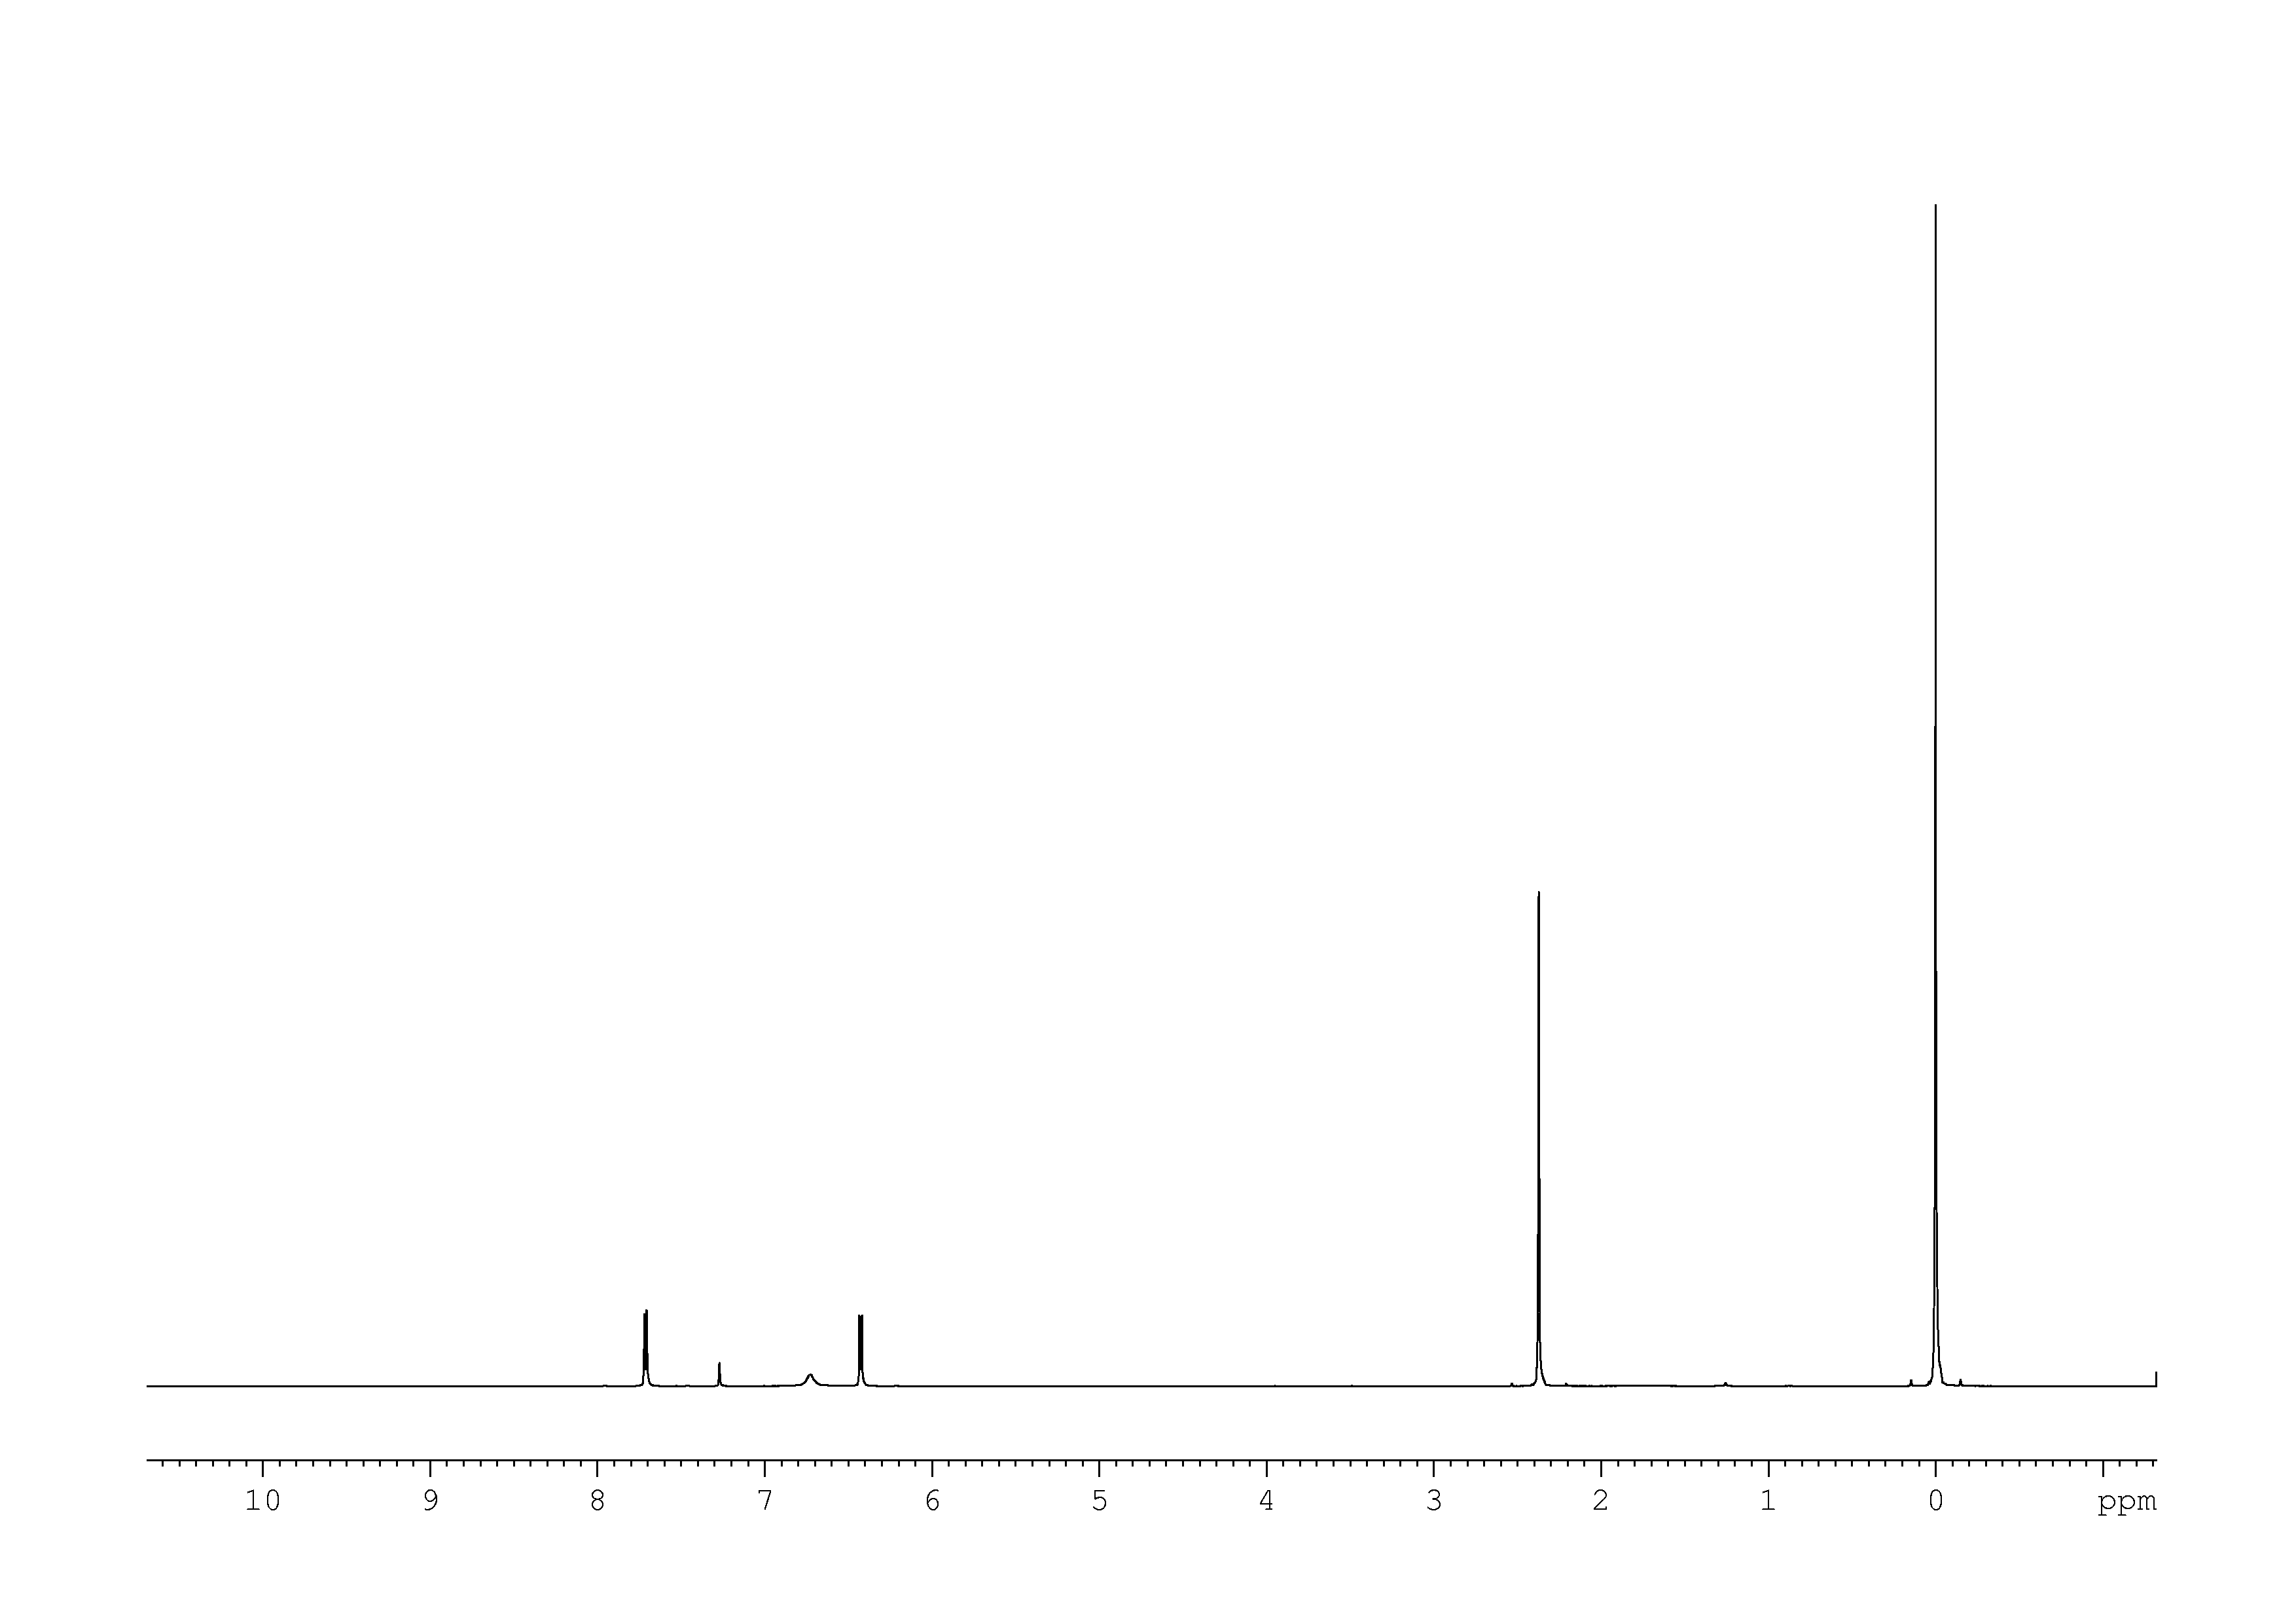 1D 1H, n/a spectrum for 3-hydroxy-2-methyl-4-pyrone